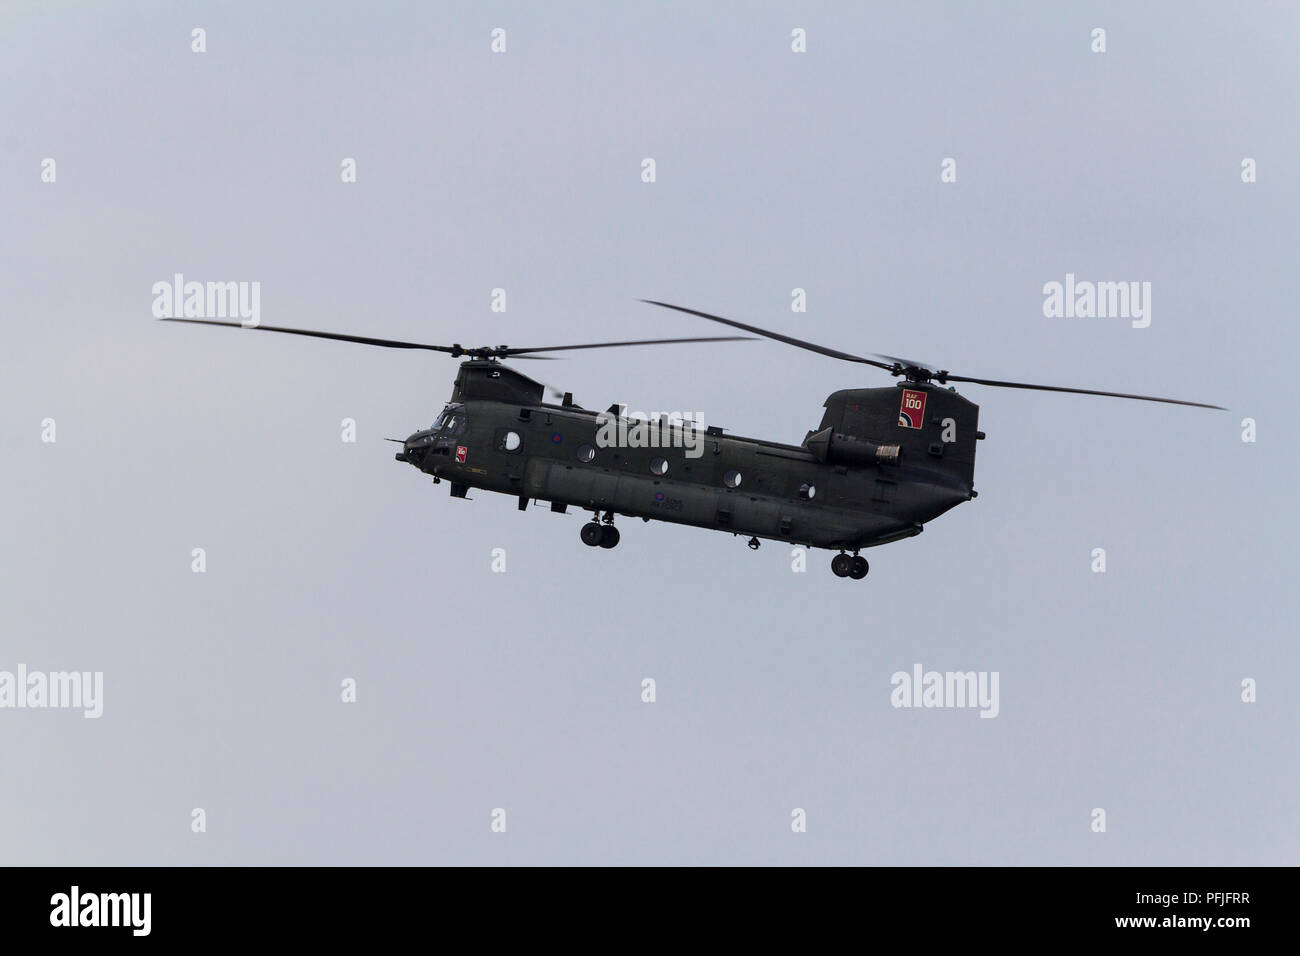 Chinook helicopter flying over shoreham UK coastal area. Vertical lift off and hovering heavy duty twin engine tandem rotors RAF transport aircraft. - Stock Image